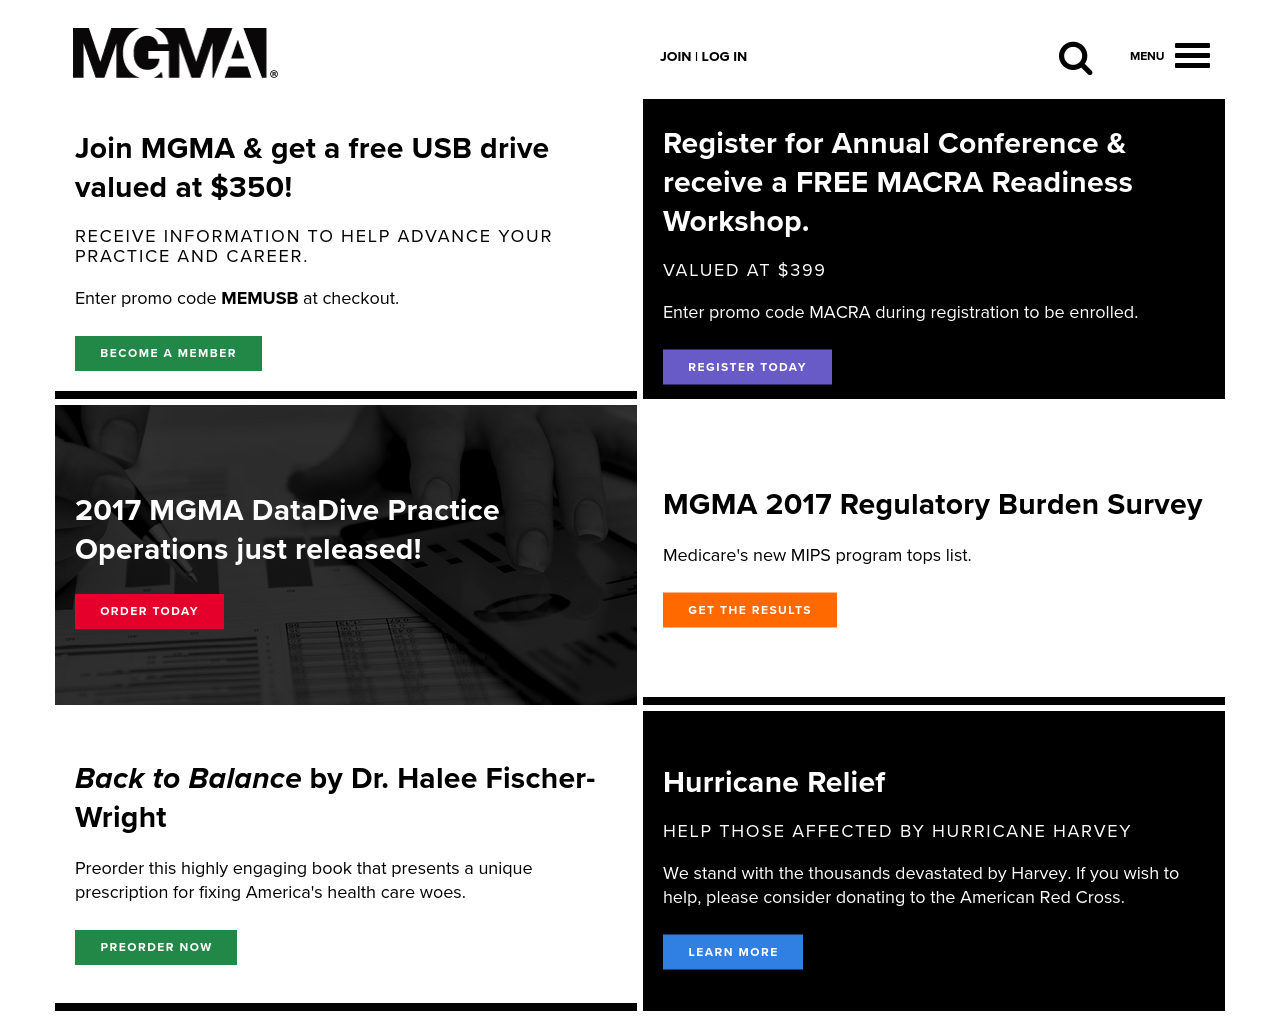 MGMA-Advertising-Reviews-Pricing